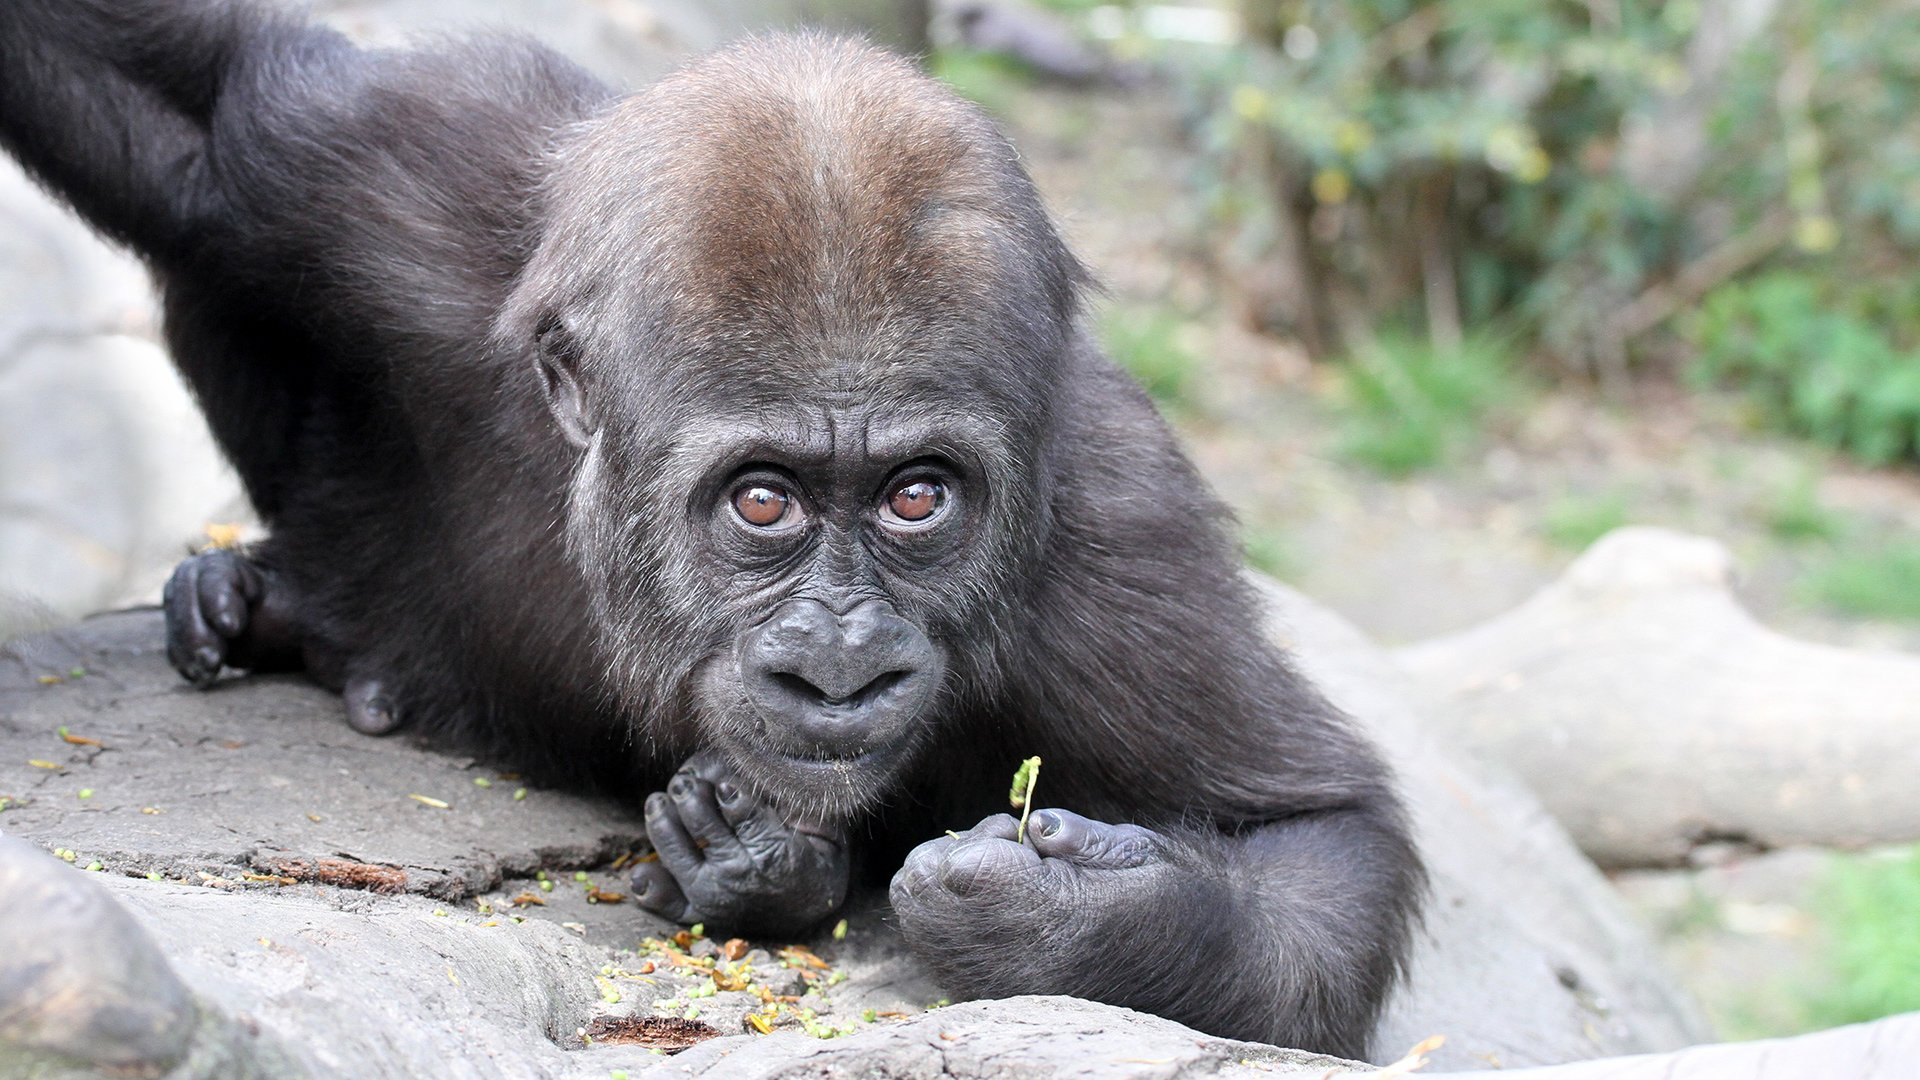 Yanga_april_2018_gorillababy_babygorilla.jpg